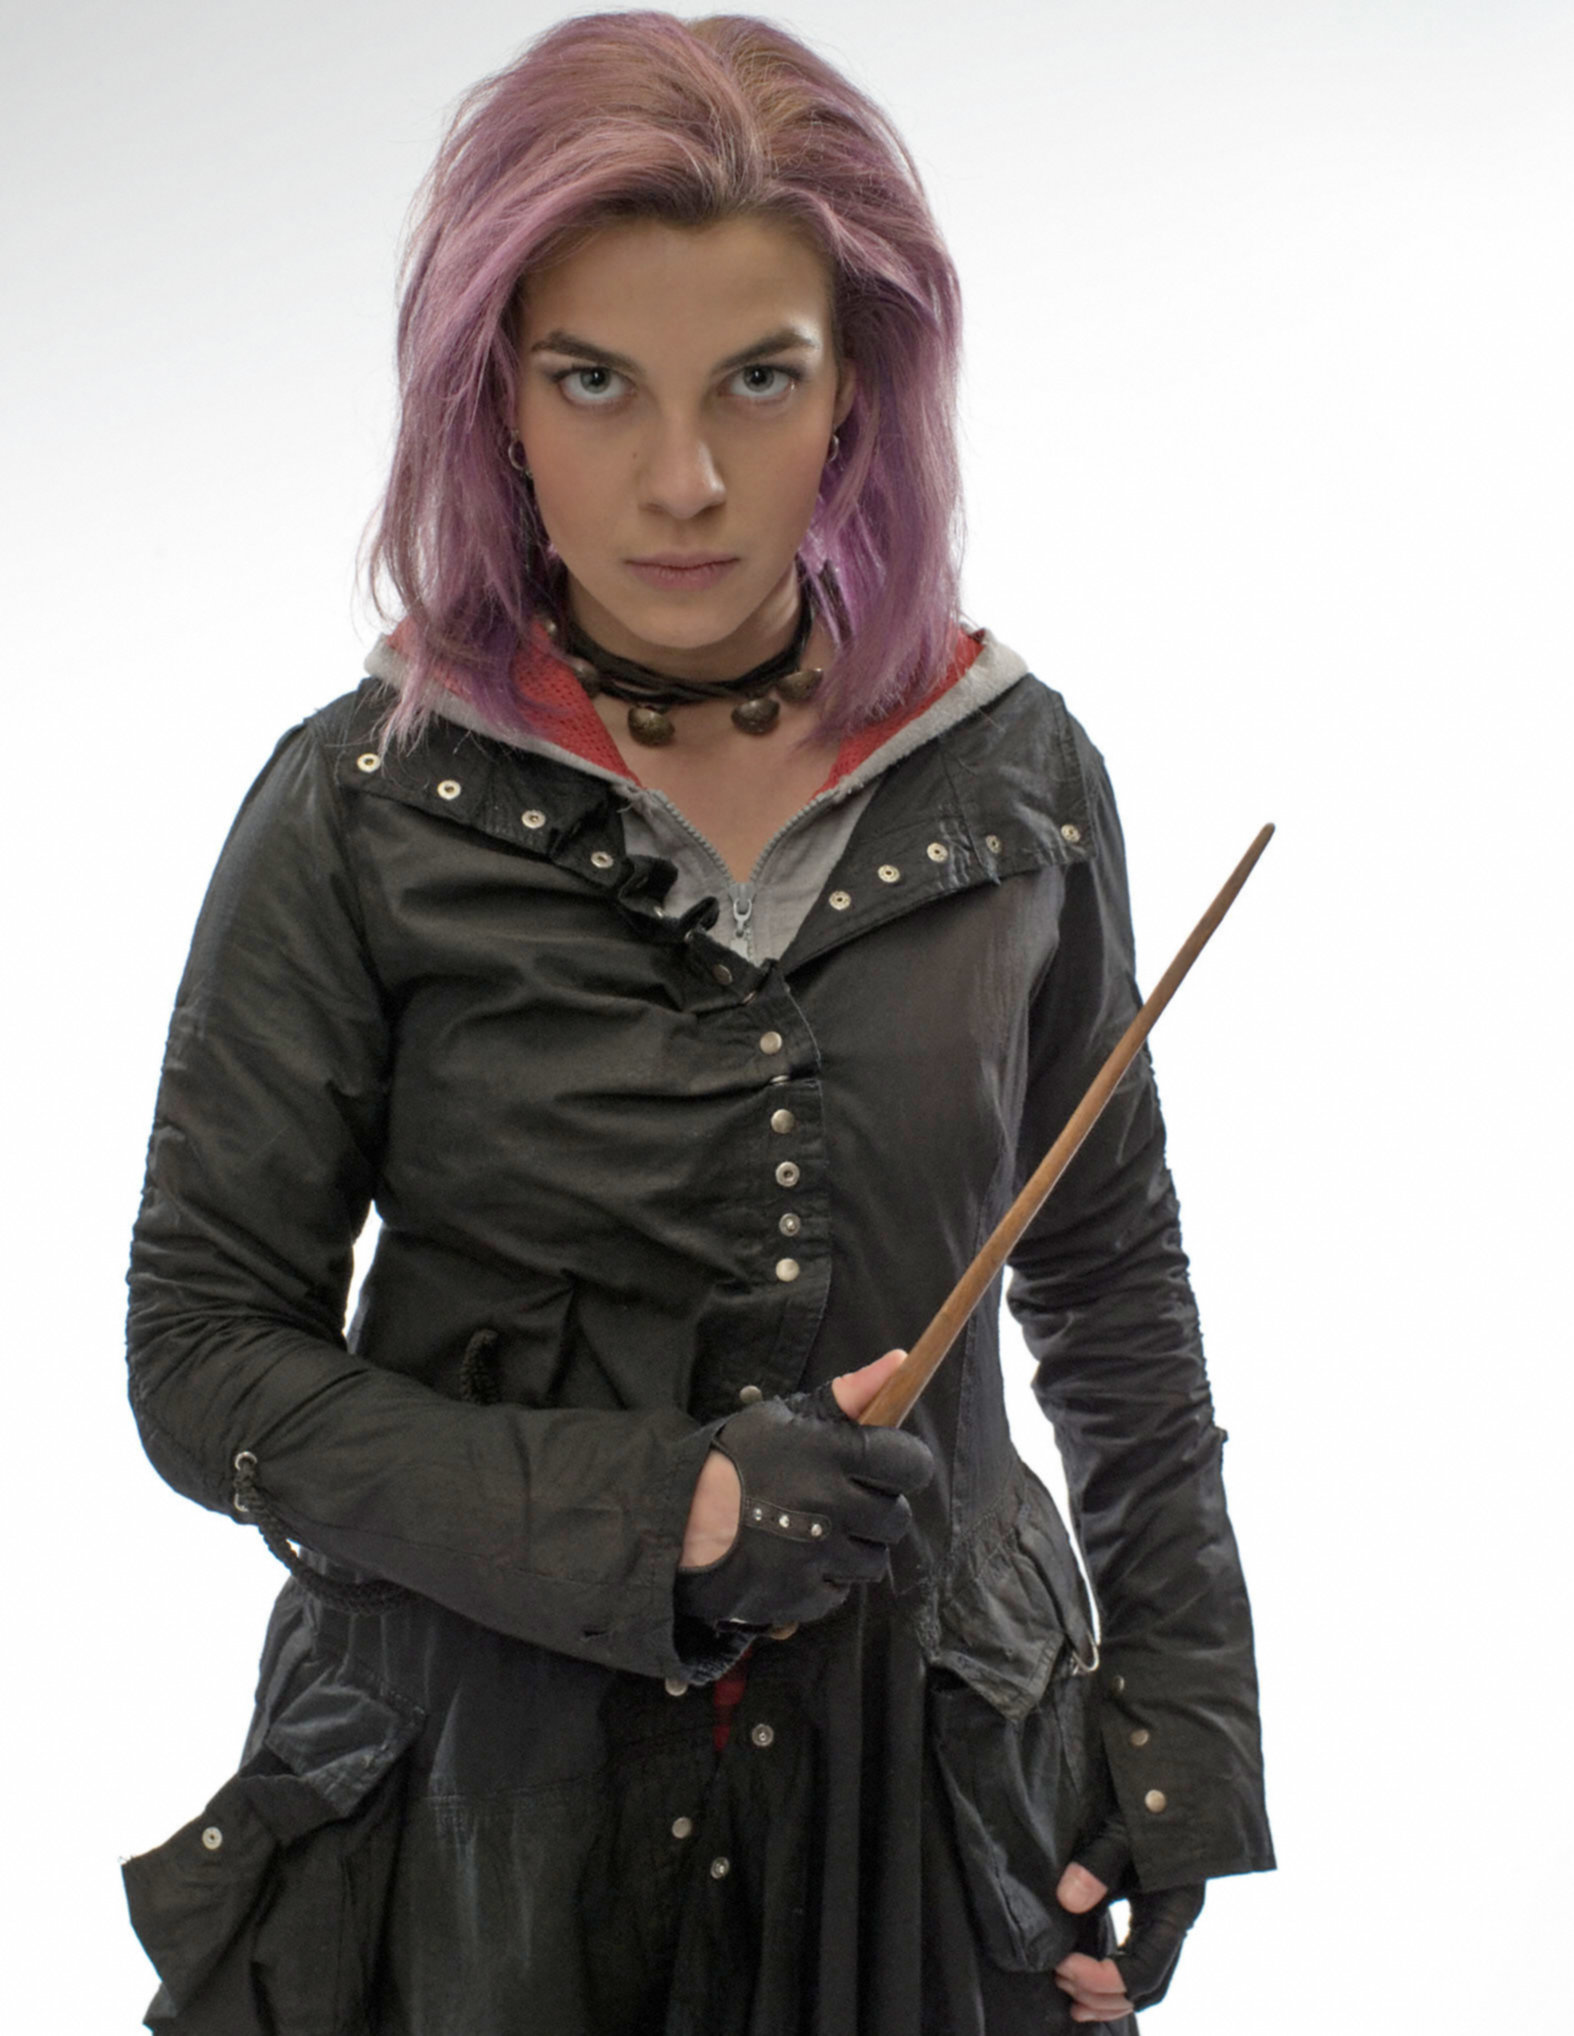 Tonks with pink hair and her wand from the Order of the Pheonix